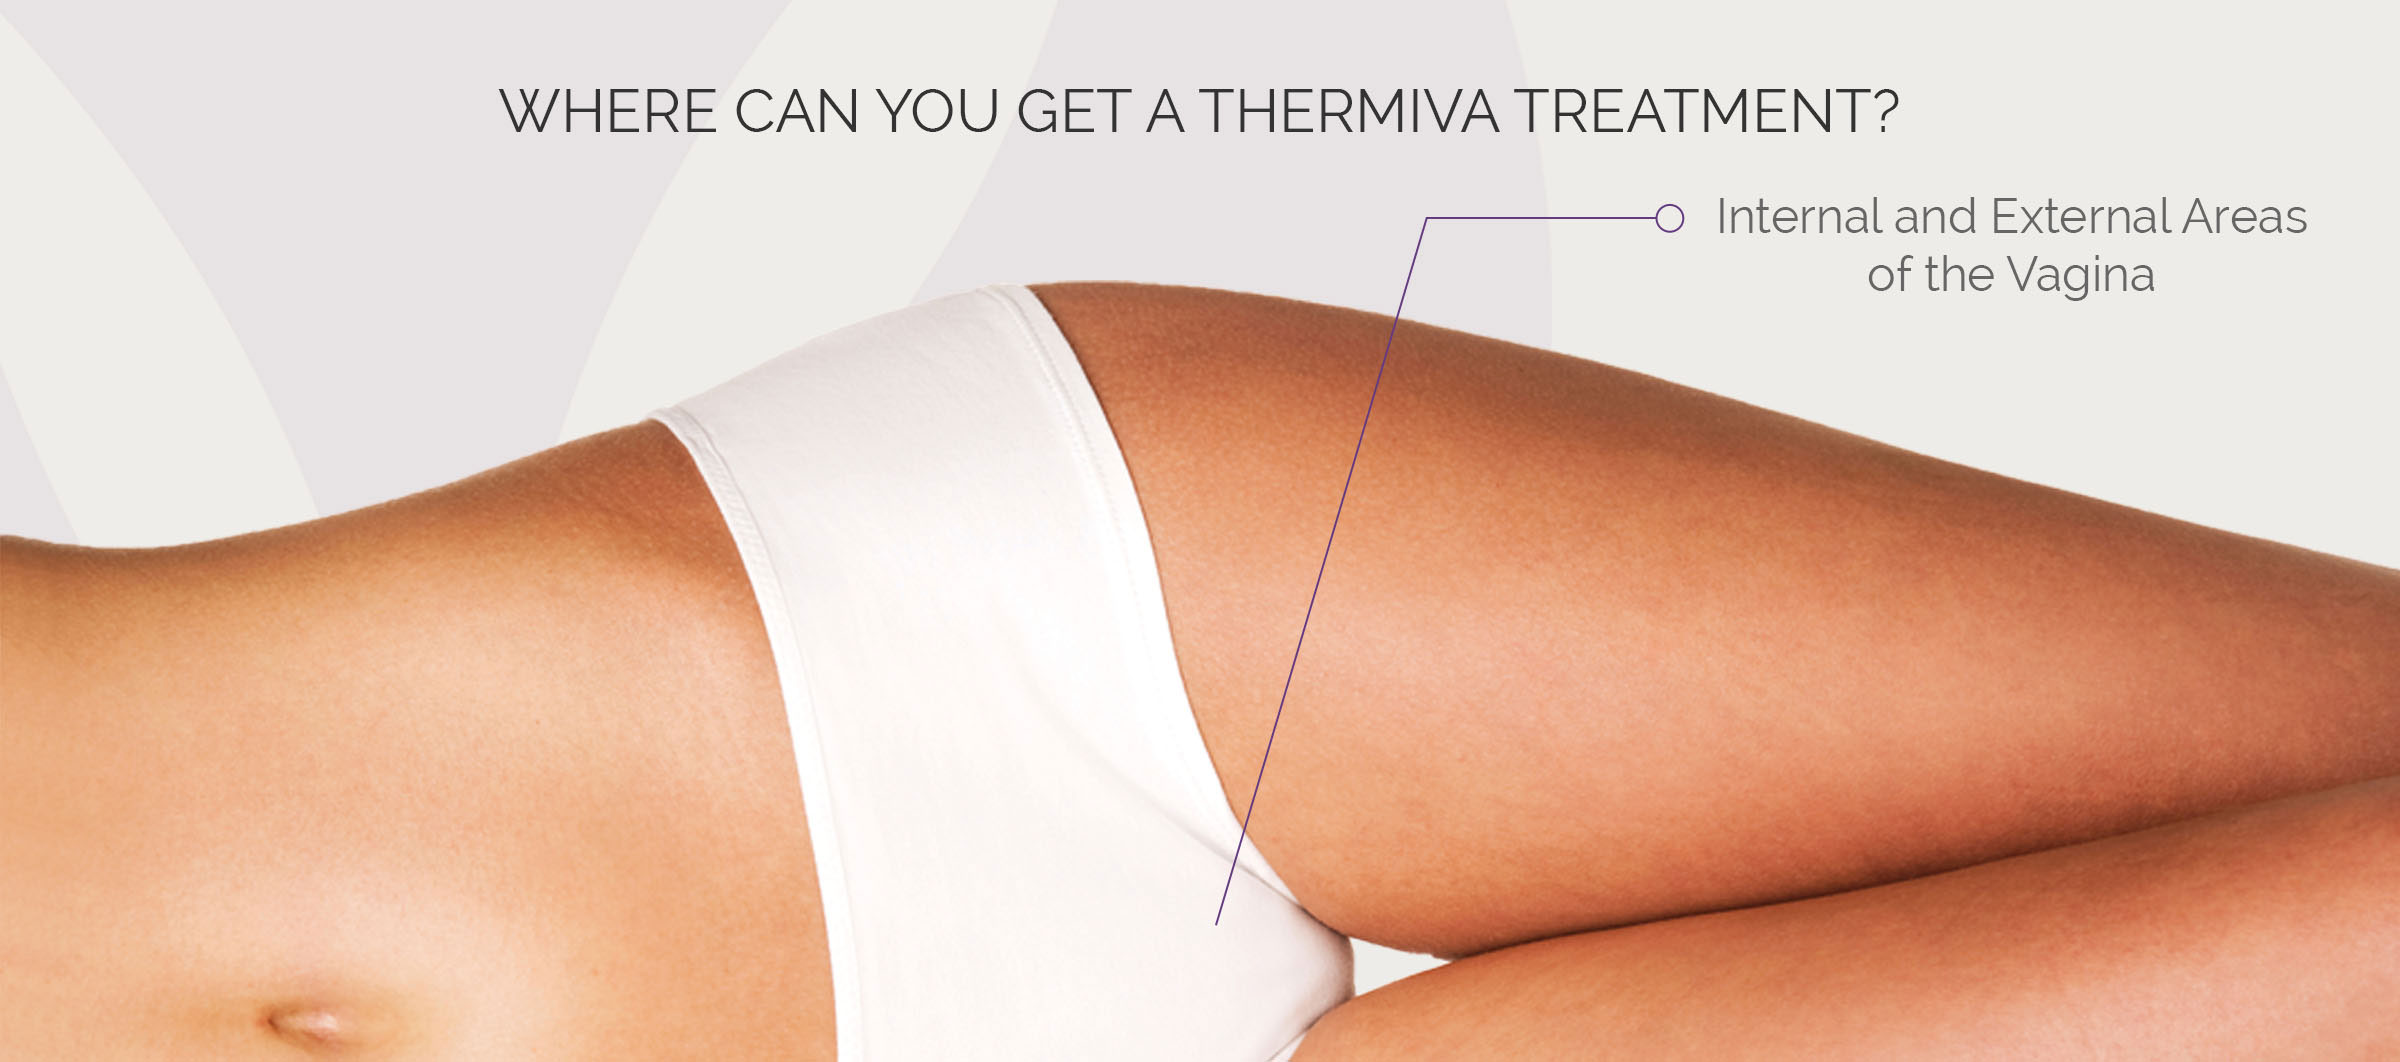 Where_Can_You_Thermi_Treatment_Comps_lger_080216_0005_ThermiVa